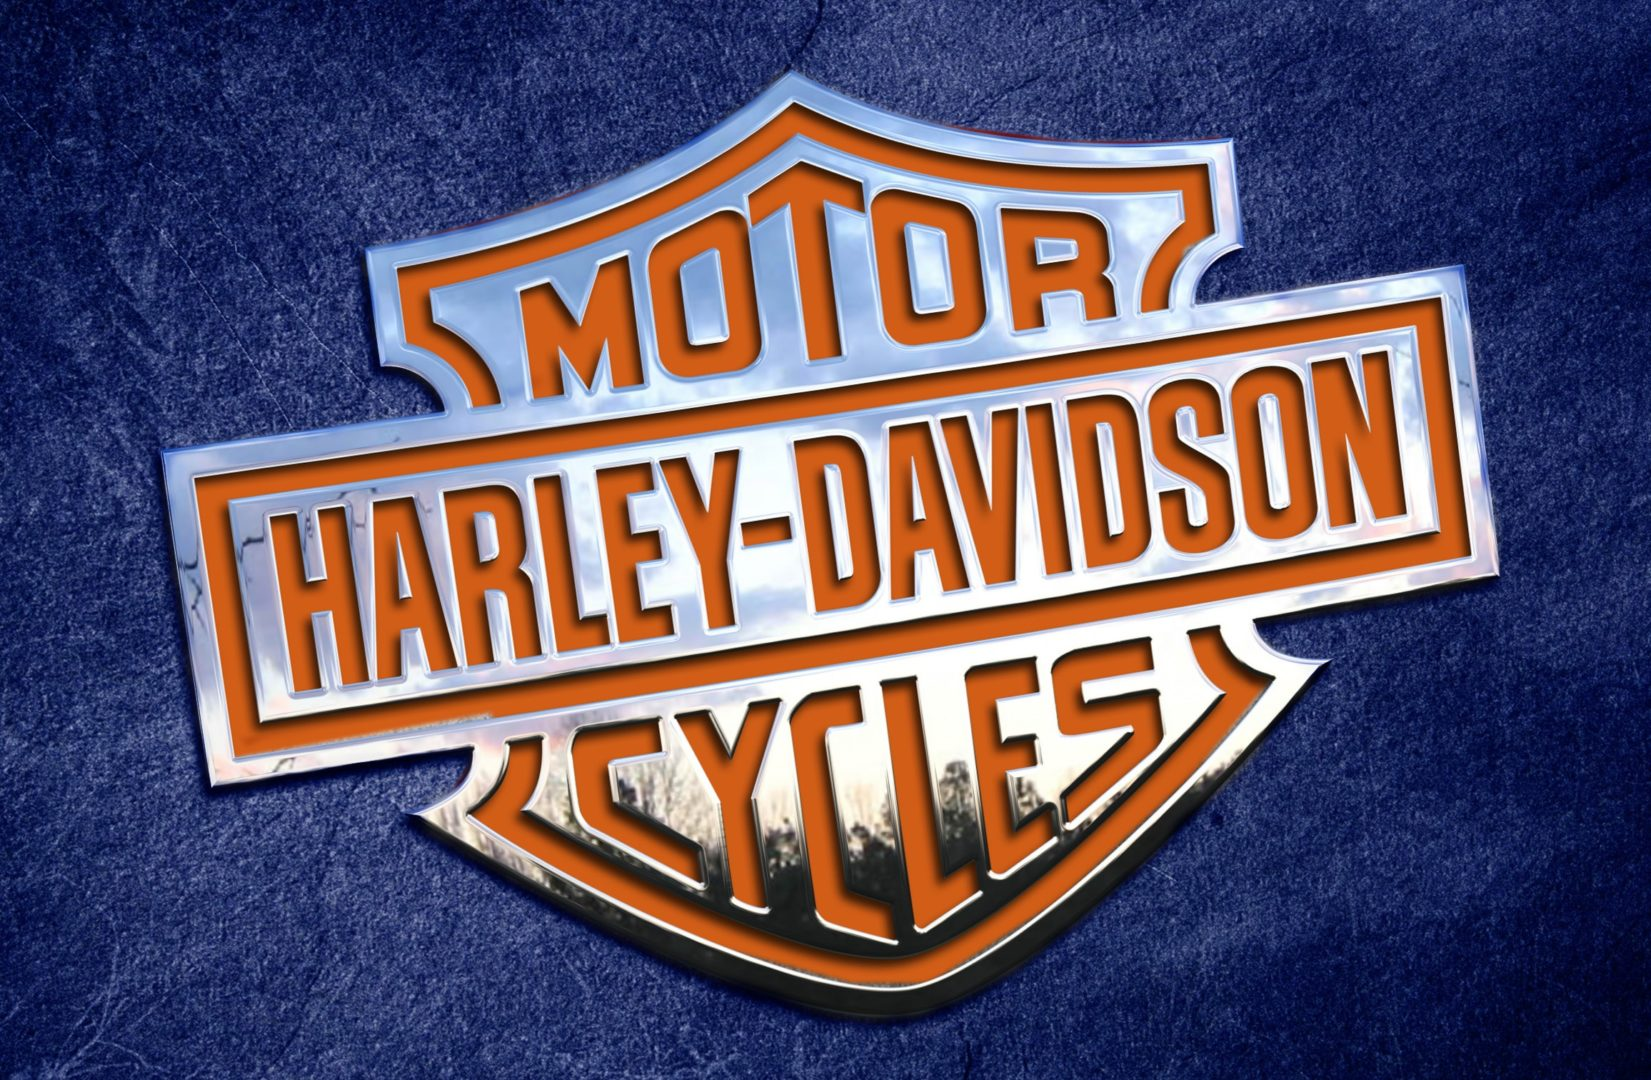 a company background information of harley davidson A disparaging quote about president trump circulating on twitter and purporting  to be from the company's chief executive is fake.